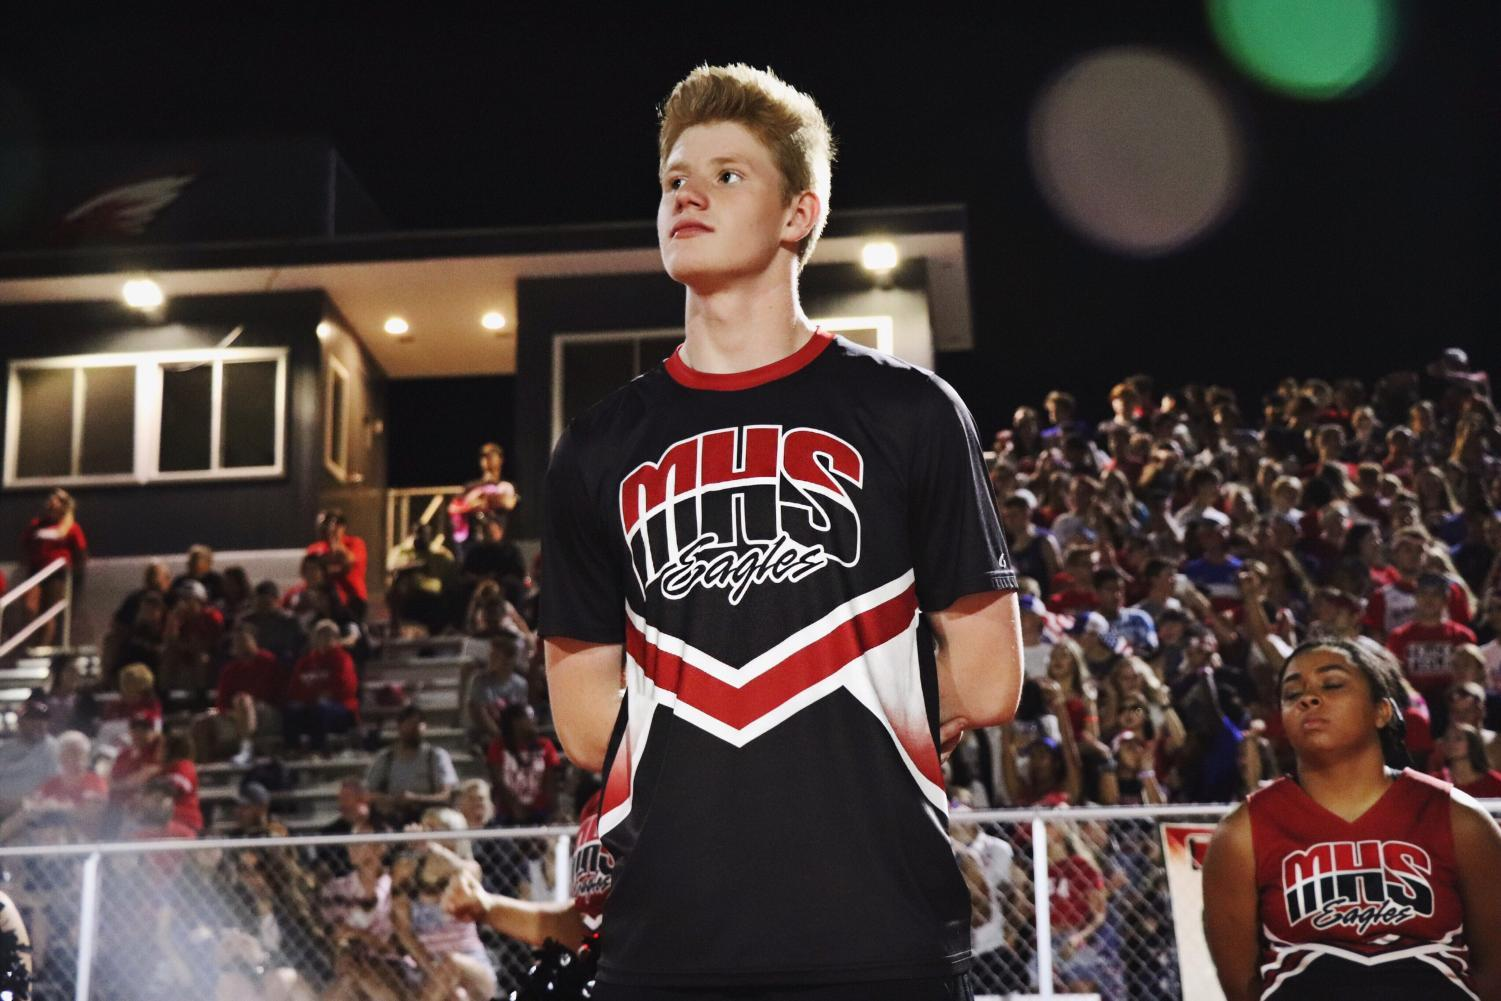 Collin Lee cheers at a football game. Lee has been cheering for eight years.